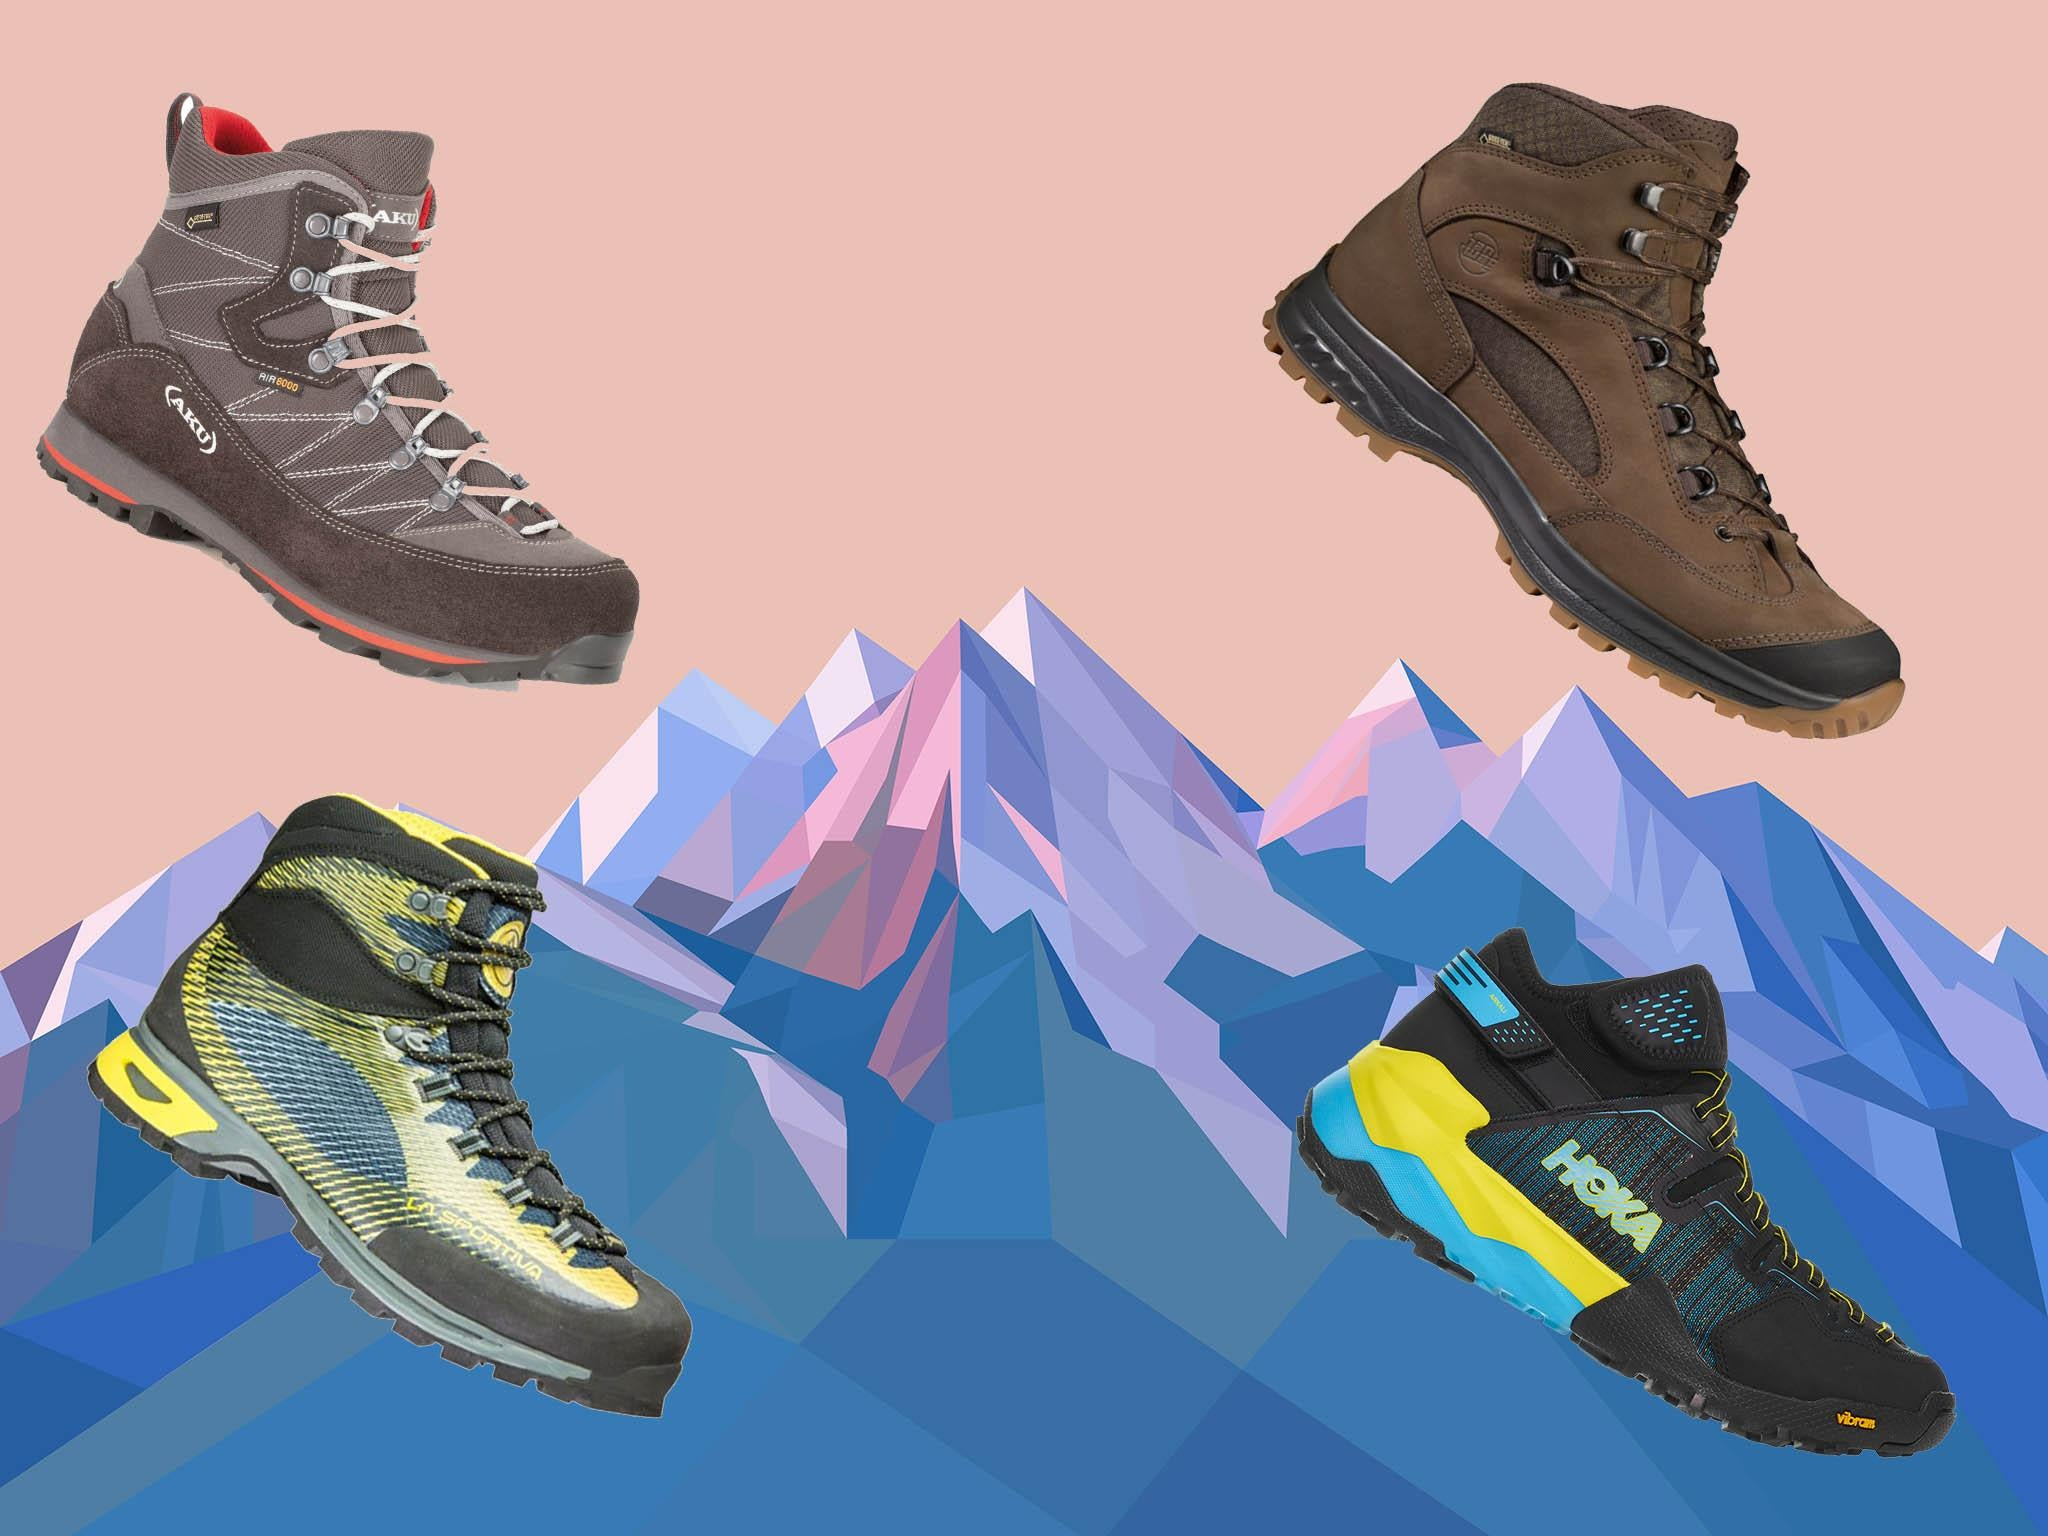 Best men's hiking boots and shoes